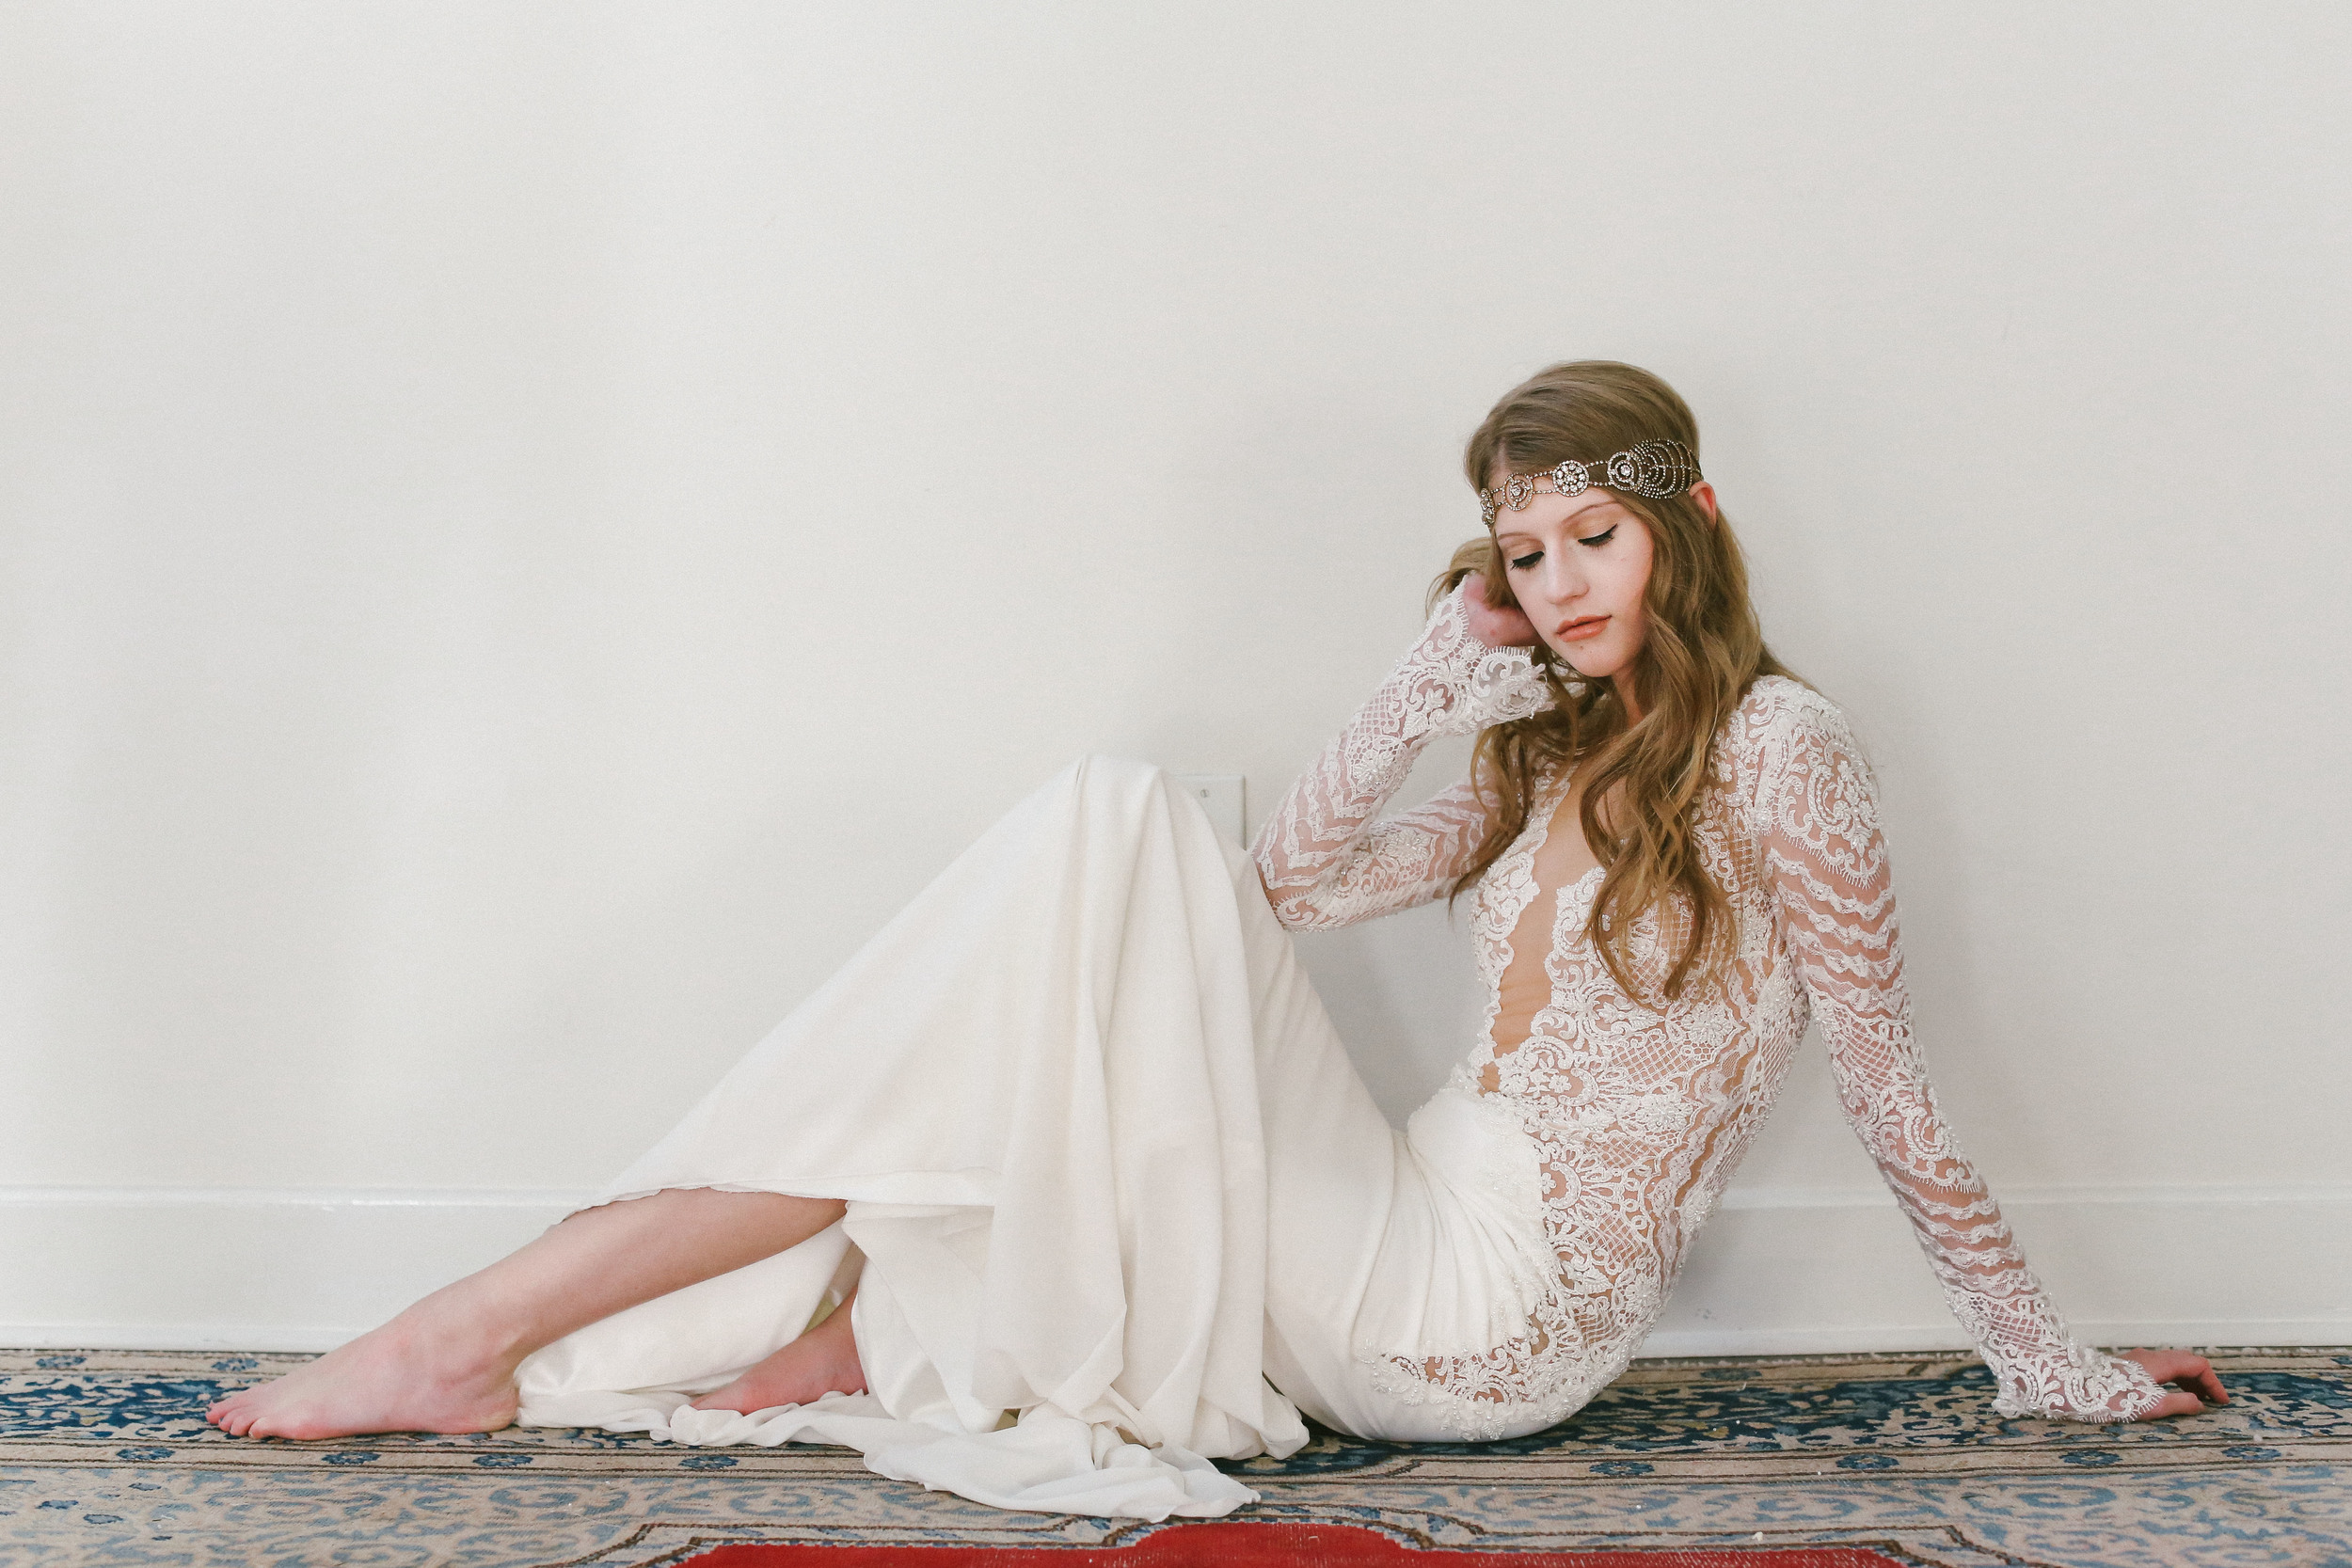 finery-boutique-huntsivlle-alabama-bohemian-wedding-shop-odylyne-the-ceremony-yolan-cris-bride-bridal-yaki-ravid-berta-calla-blanche-lookbook-cool-nashville-tenessee-plunge-open-back-train